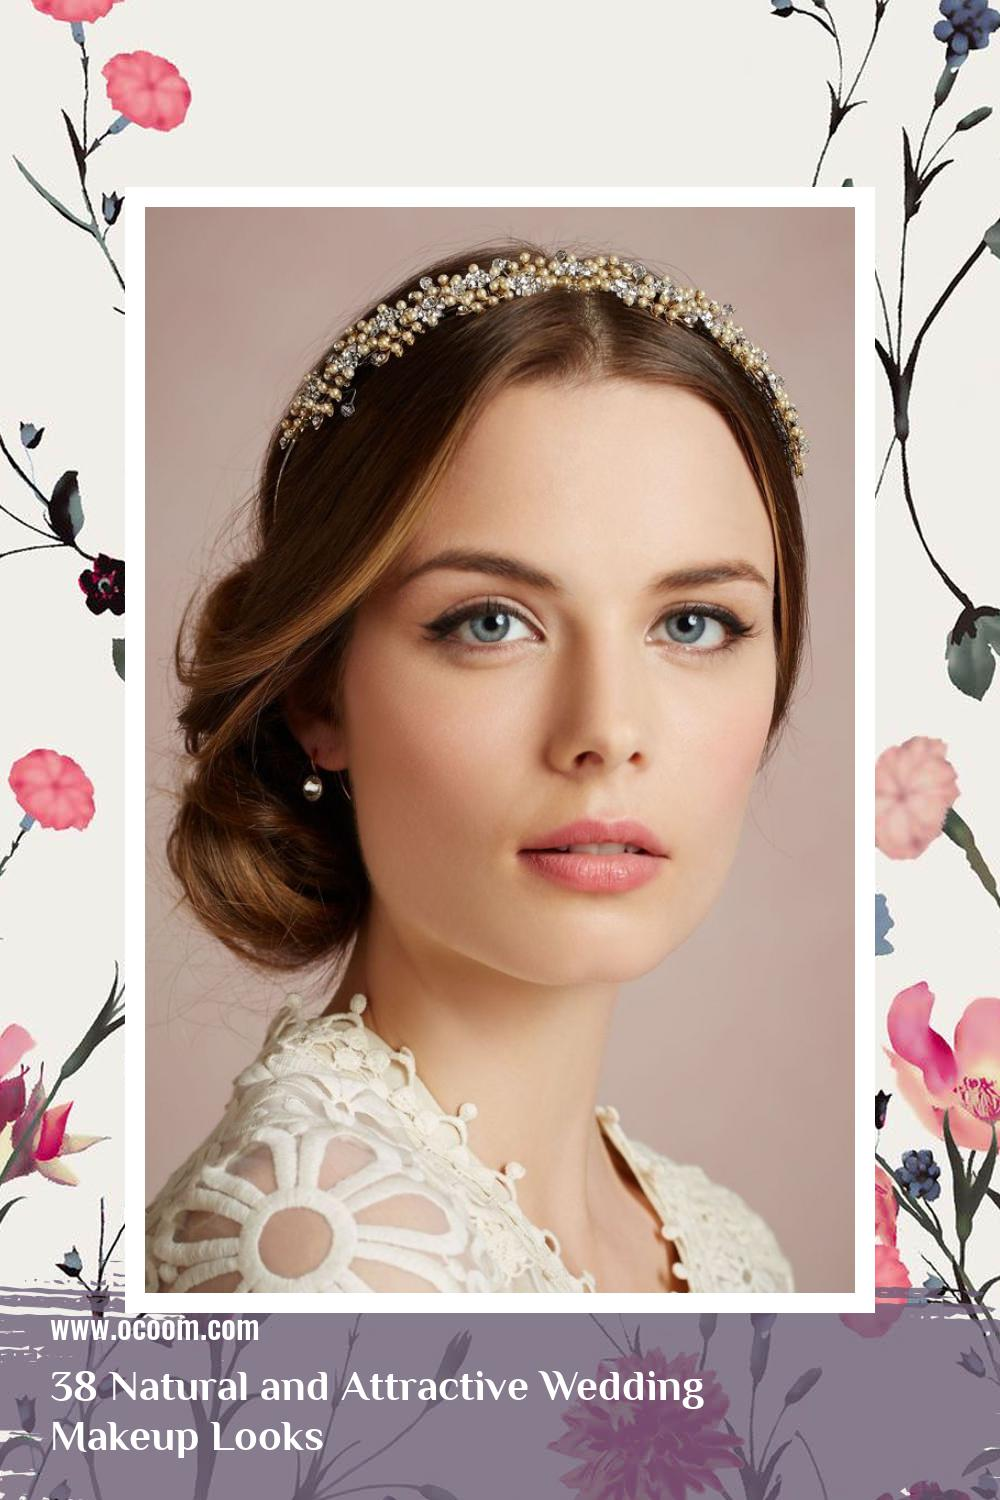 38 Natural and Attractive Wedding Makeup Looks 8